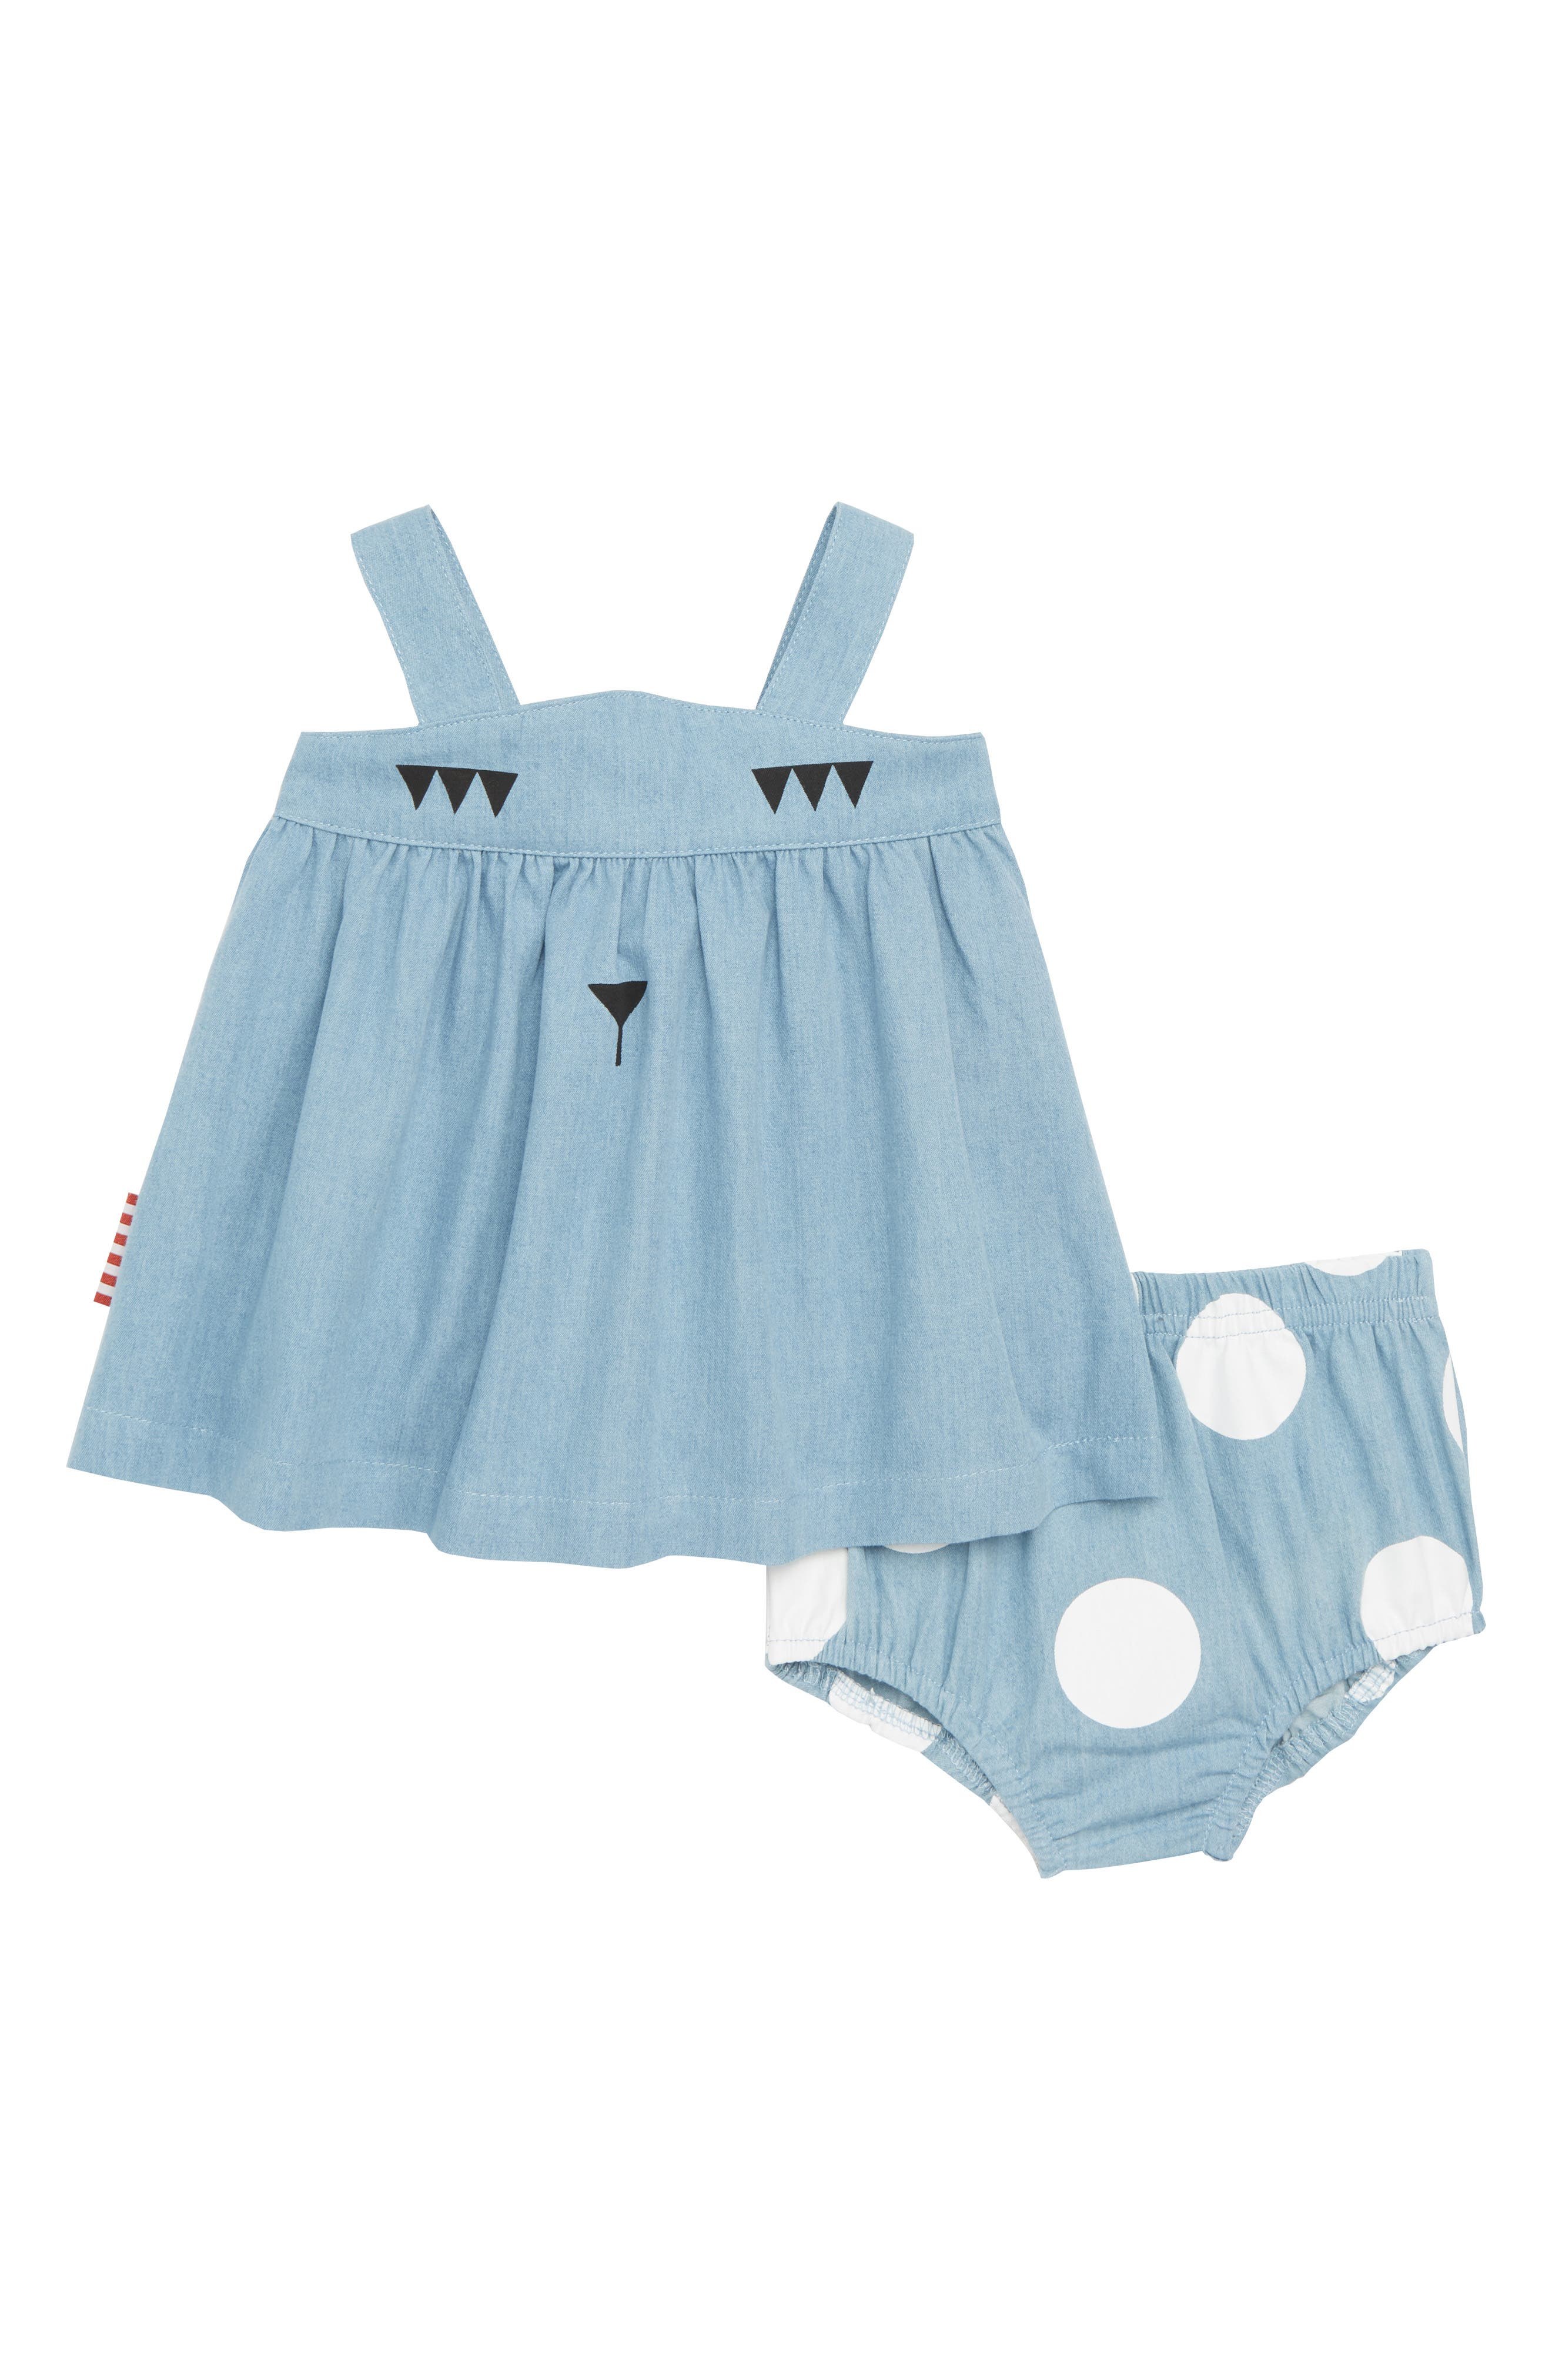 Swing Top & Bloomers Set,                             Main thumbnail 1, color,                             400